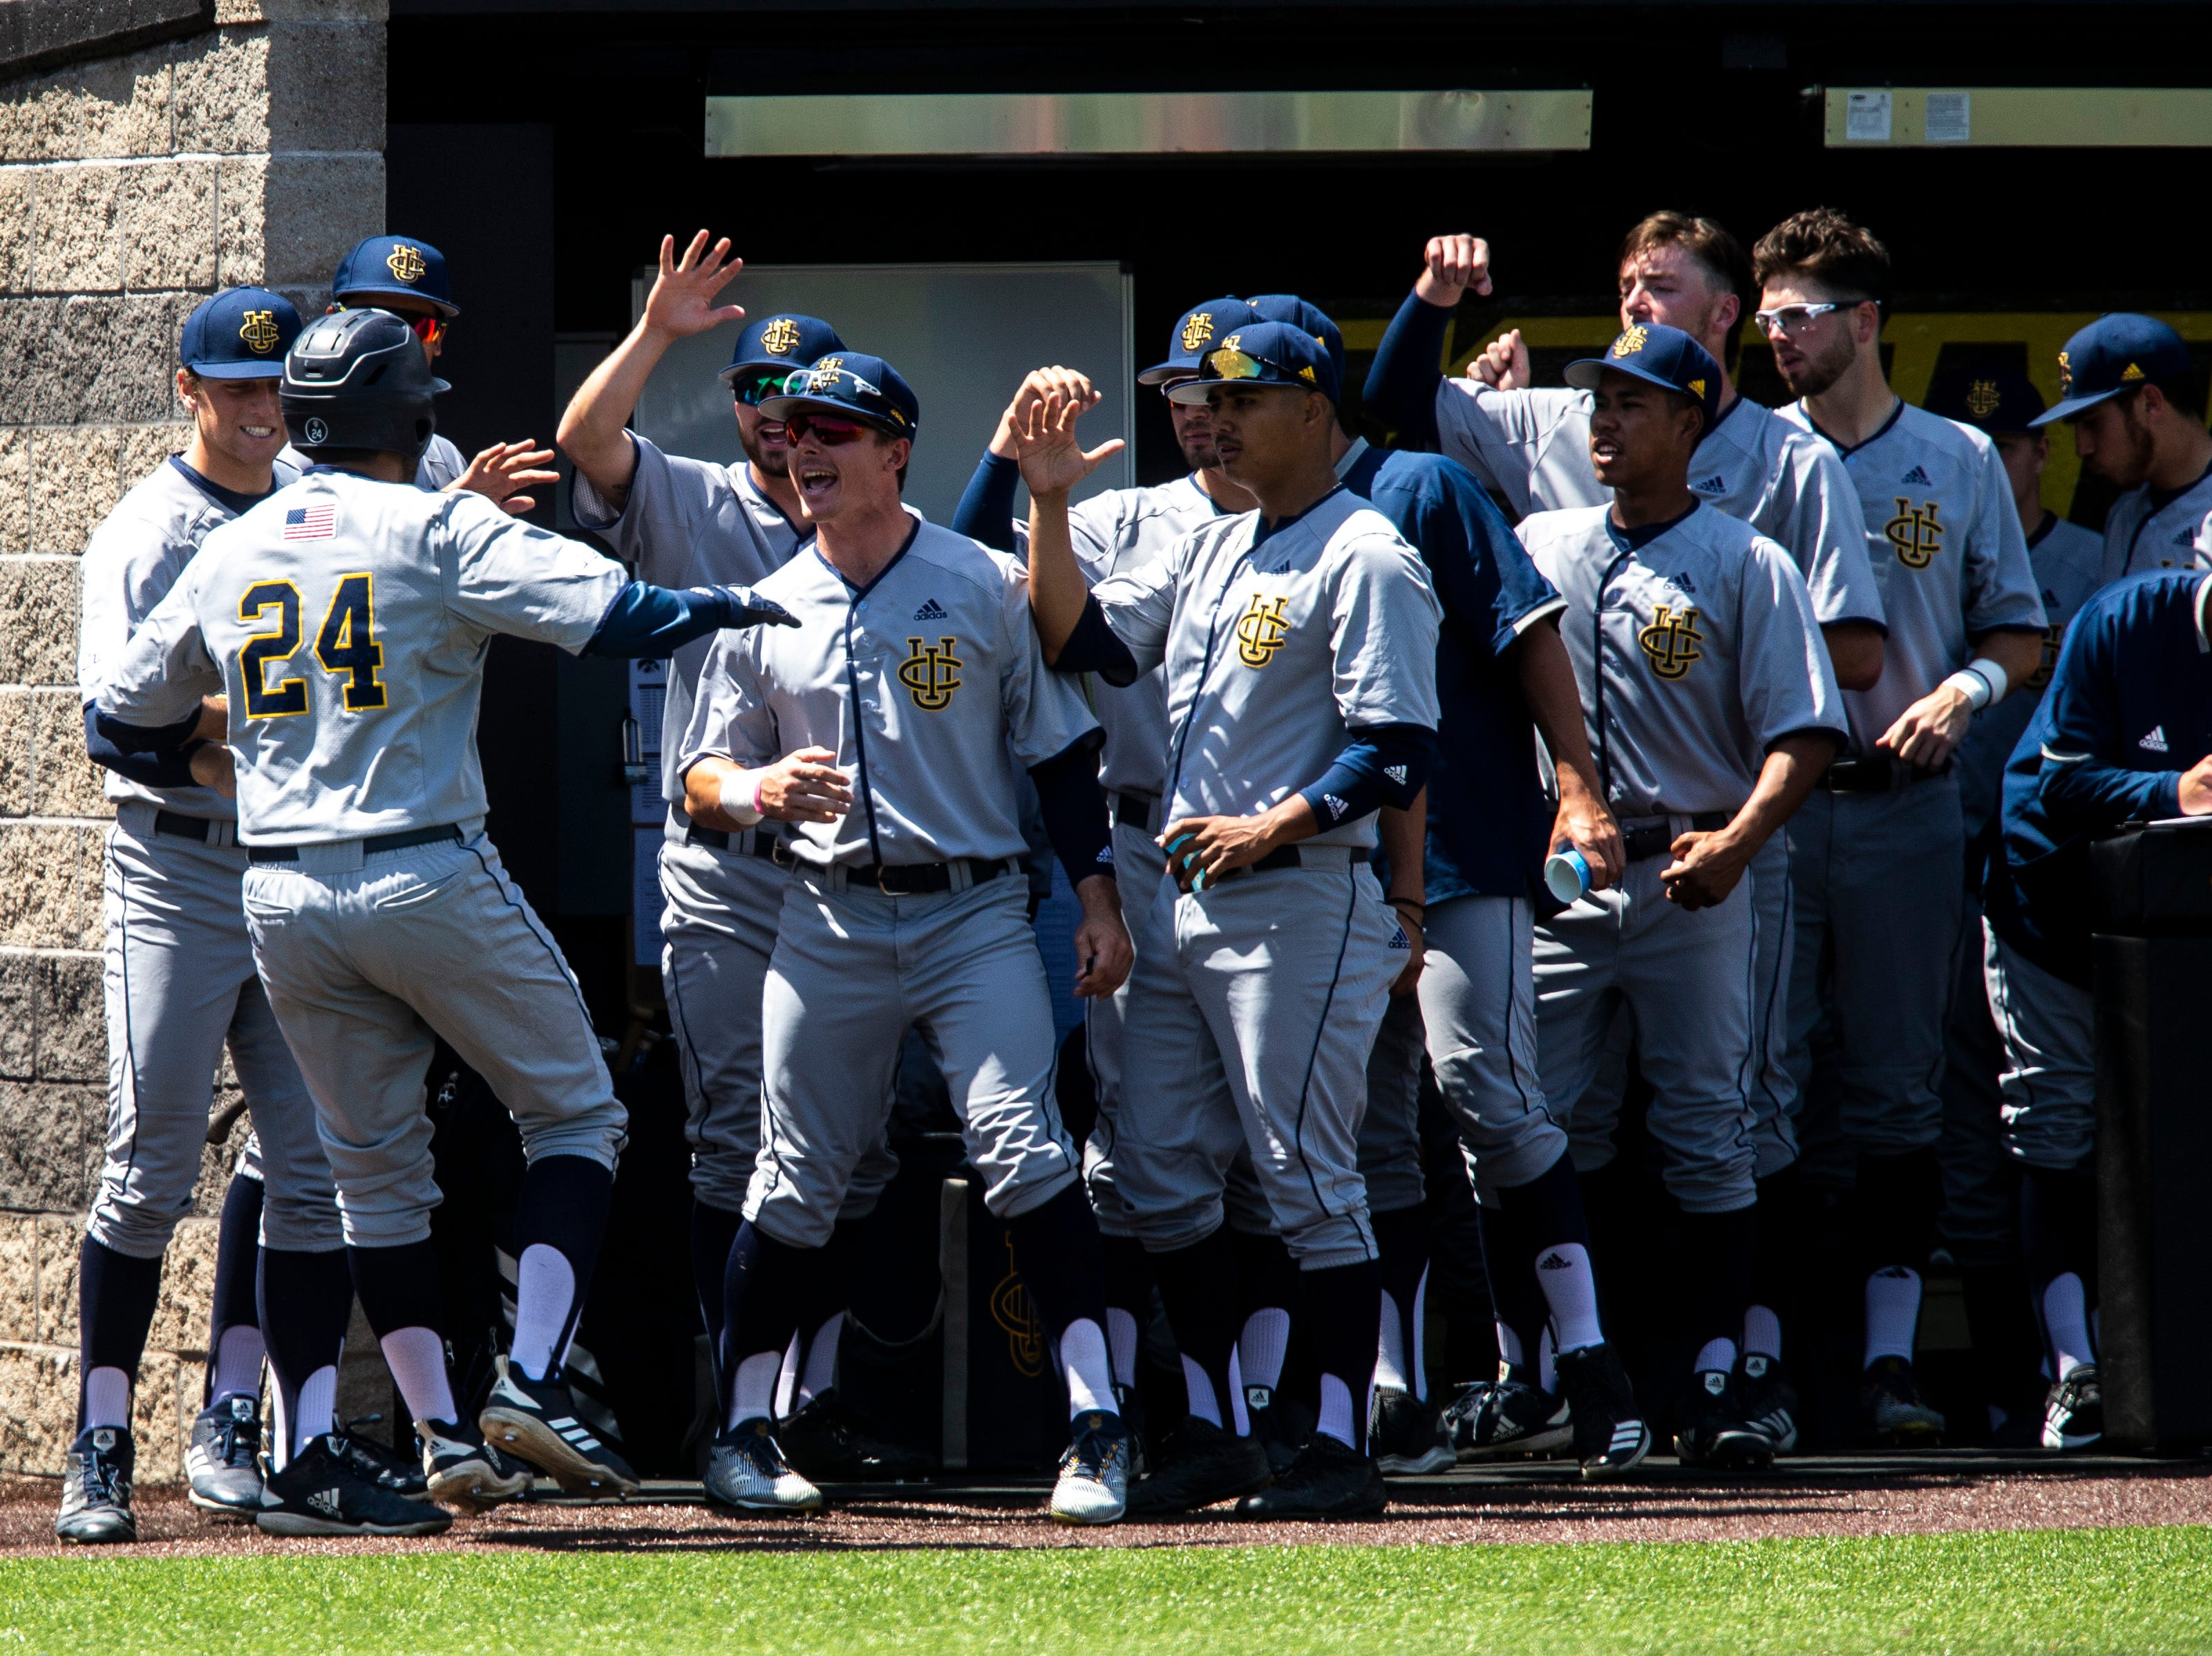 University of California Irvine's Jacob Castro (24) gets embraced by teammates after scoring a run during a NCAA non conference baseball game, Sunday, May 5, 2019, at Duane Banks Field in Iowa City, Iowa.